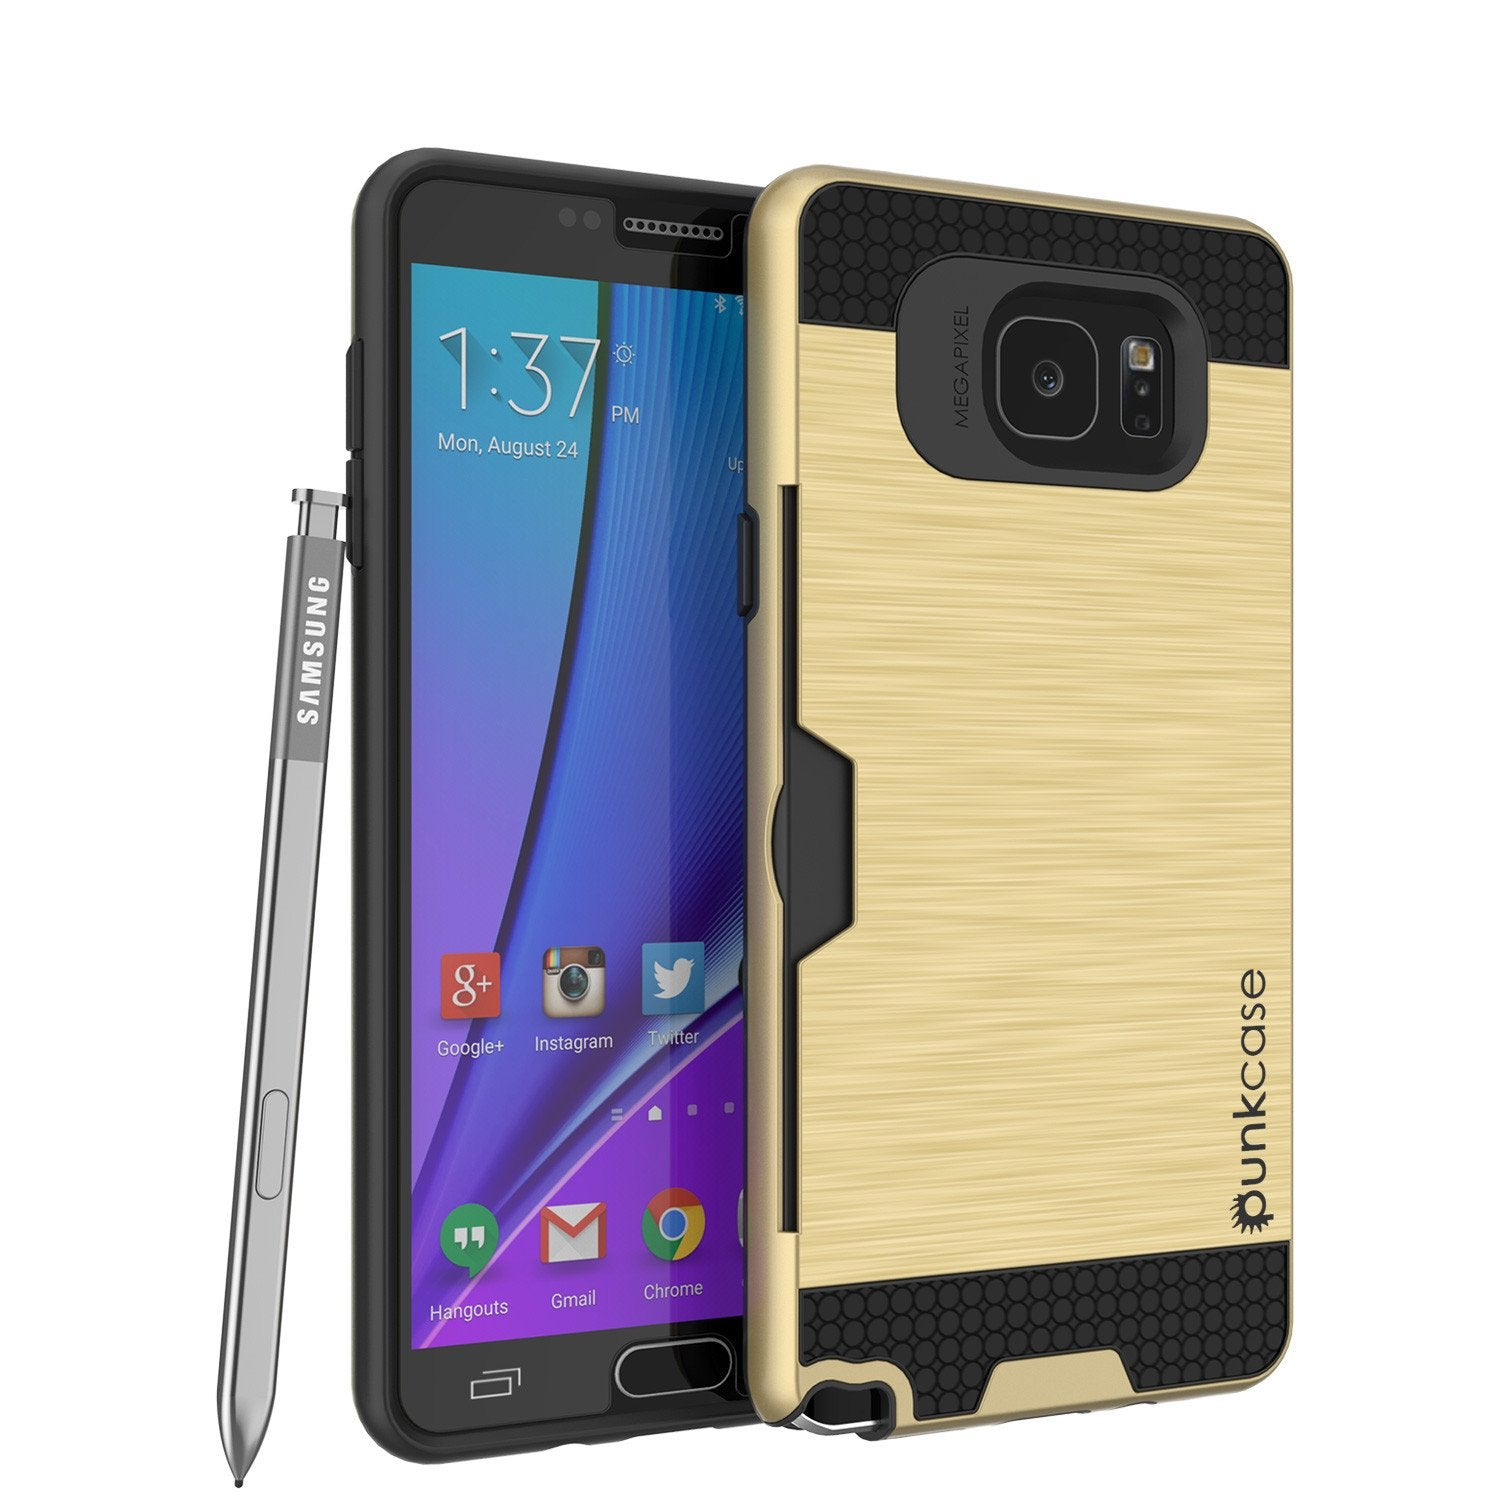 Galaxy Note 5 Case PunkCase SLOT Gold Series Slim Armor Soft Cover Case w/ Tempered Glass - PunkCase NZ